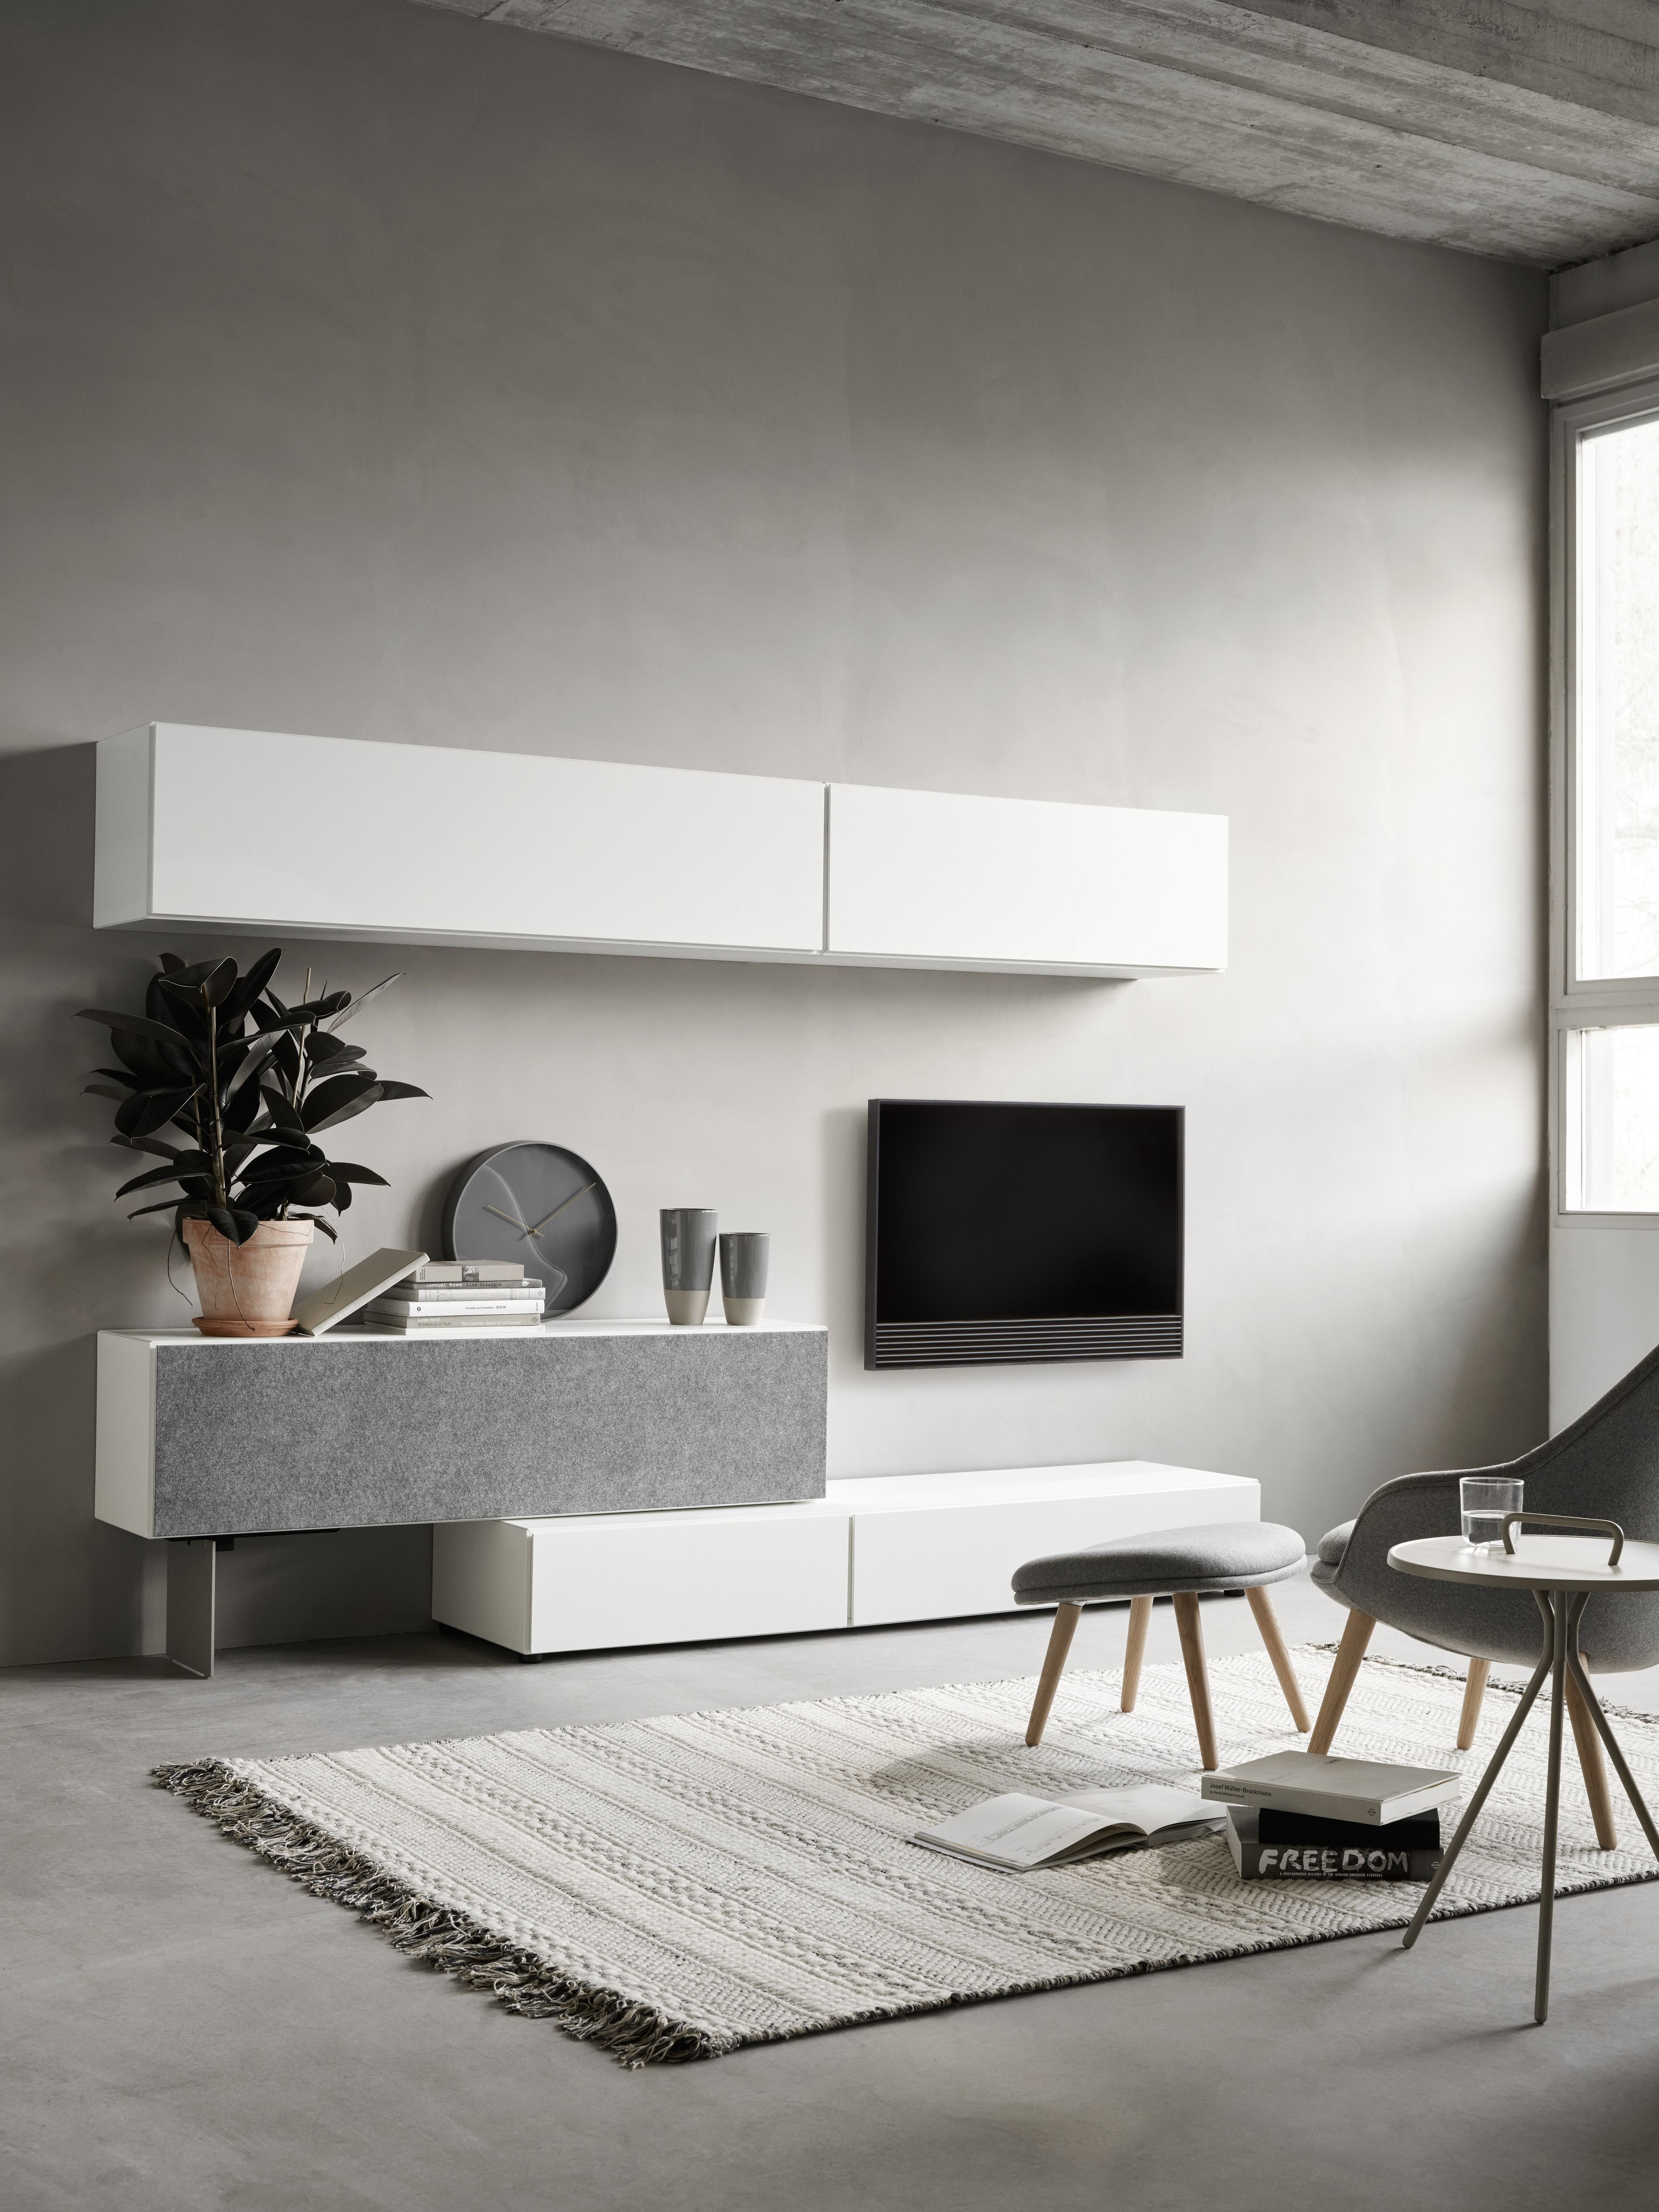 Modern storage tv units White design living room Biały zestaw tv ...